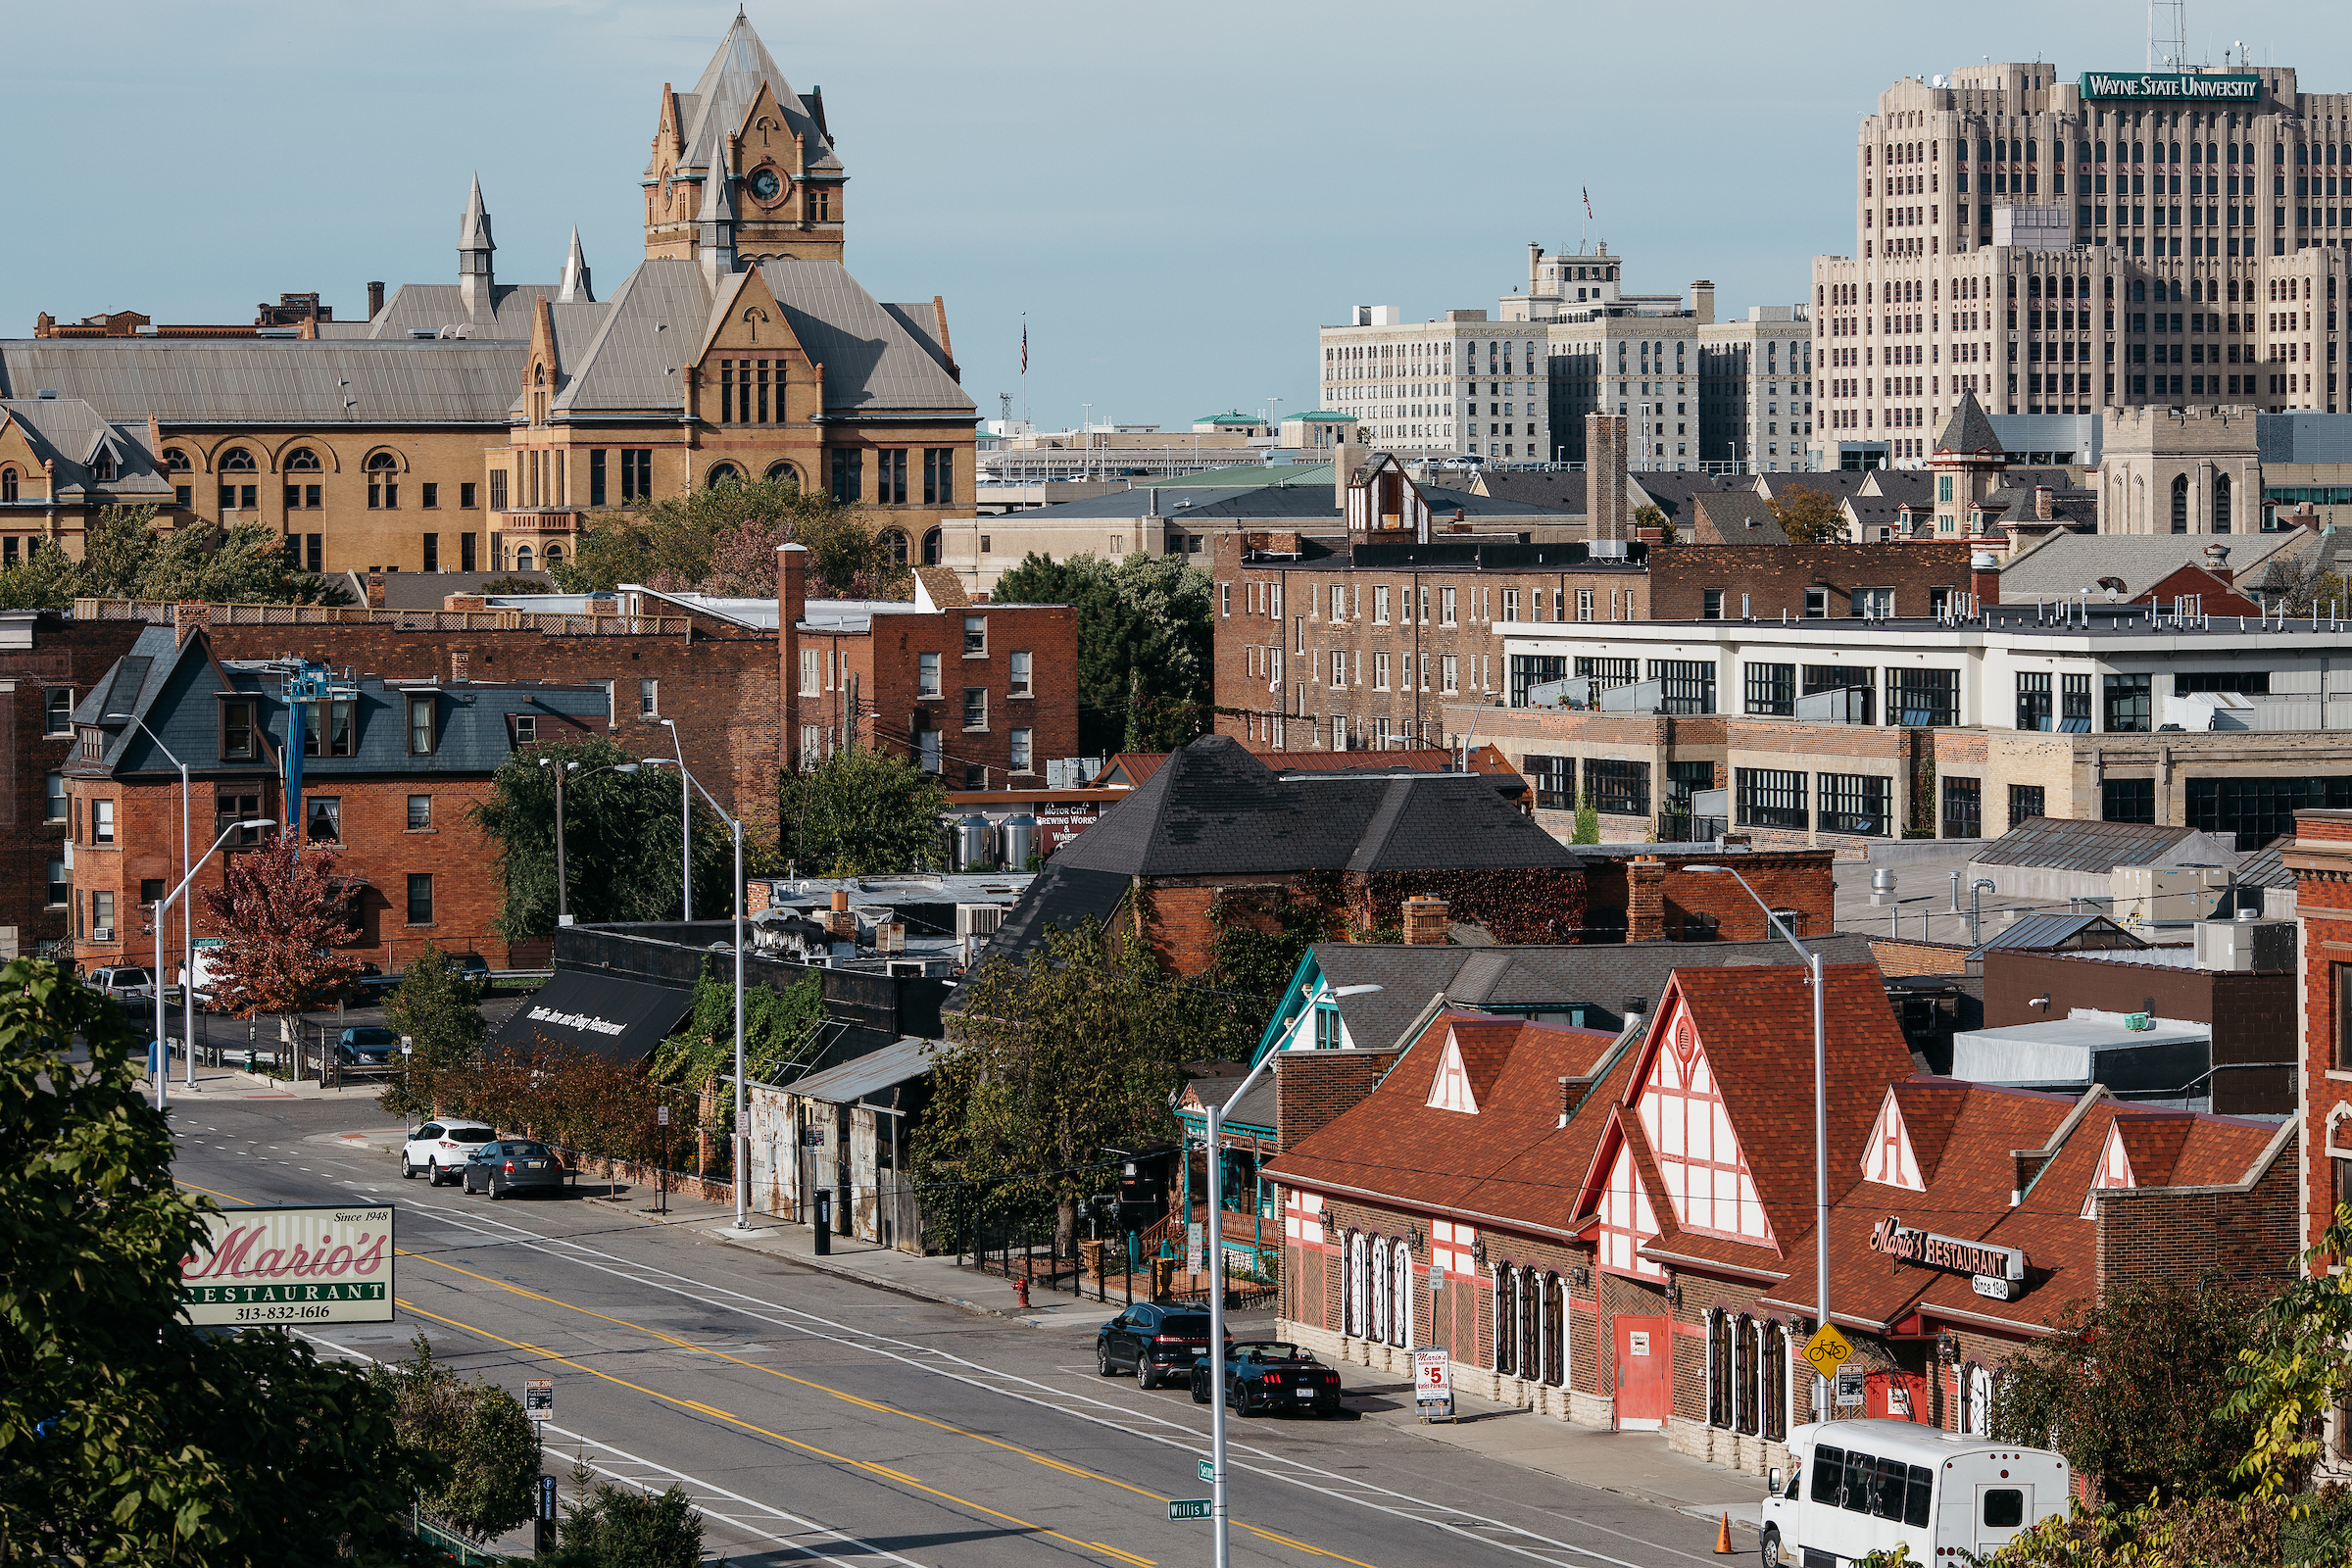 A view of Cass Corridor from above with Mario's in the foreground on a sunny day.